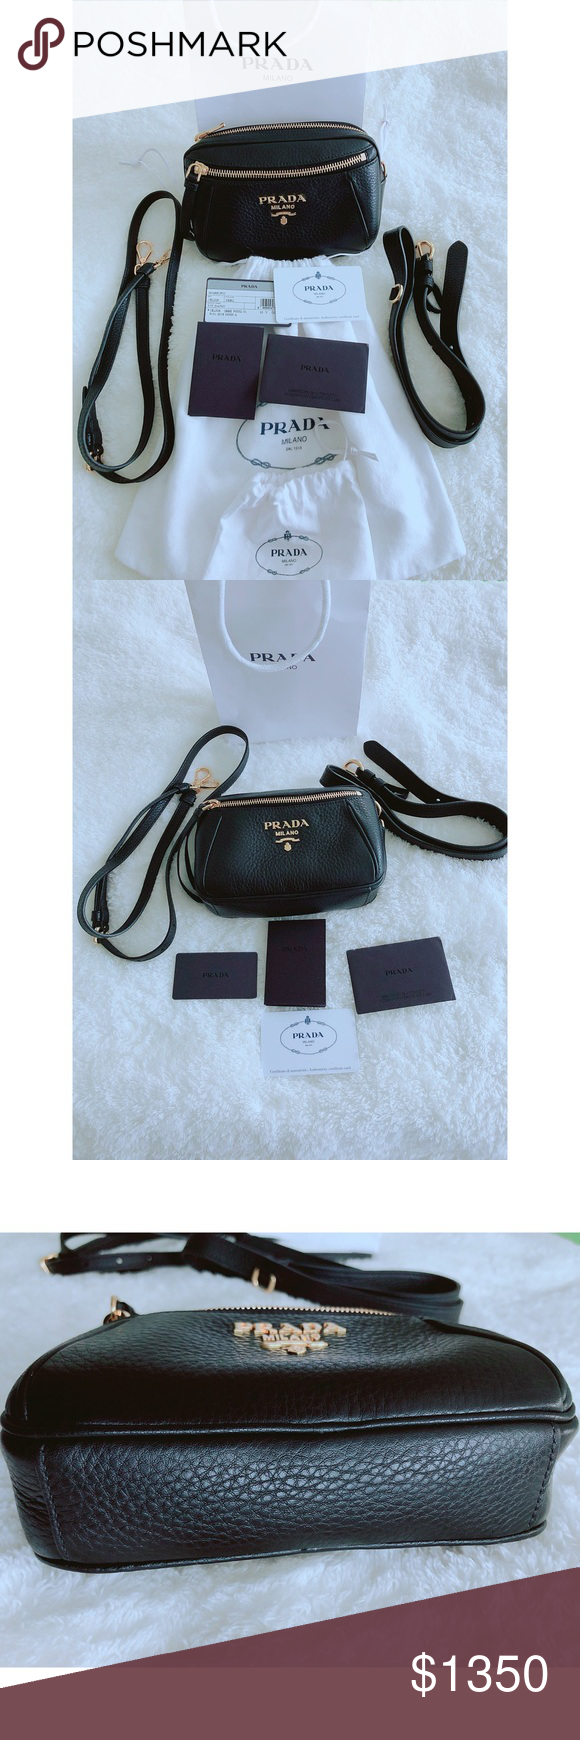 974e530d31dc Prada Belt bag Daino Crossbody Black Two way Prada bag •Can be worn as a  Crossbody with the Crossbody leather strap and as a belt with the belt  leather ...